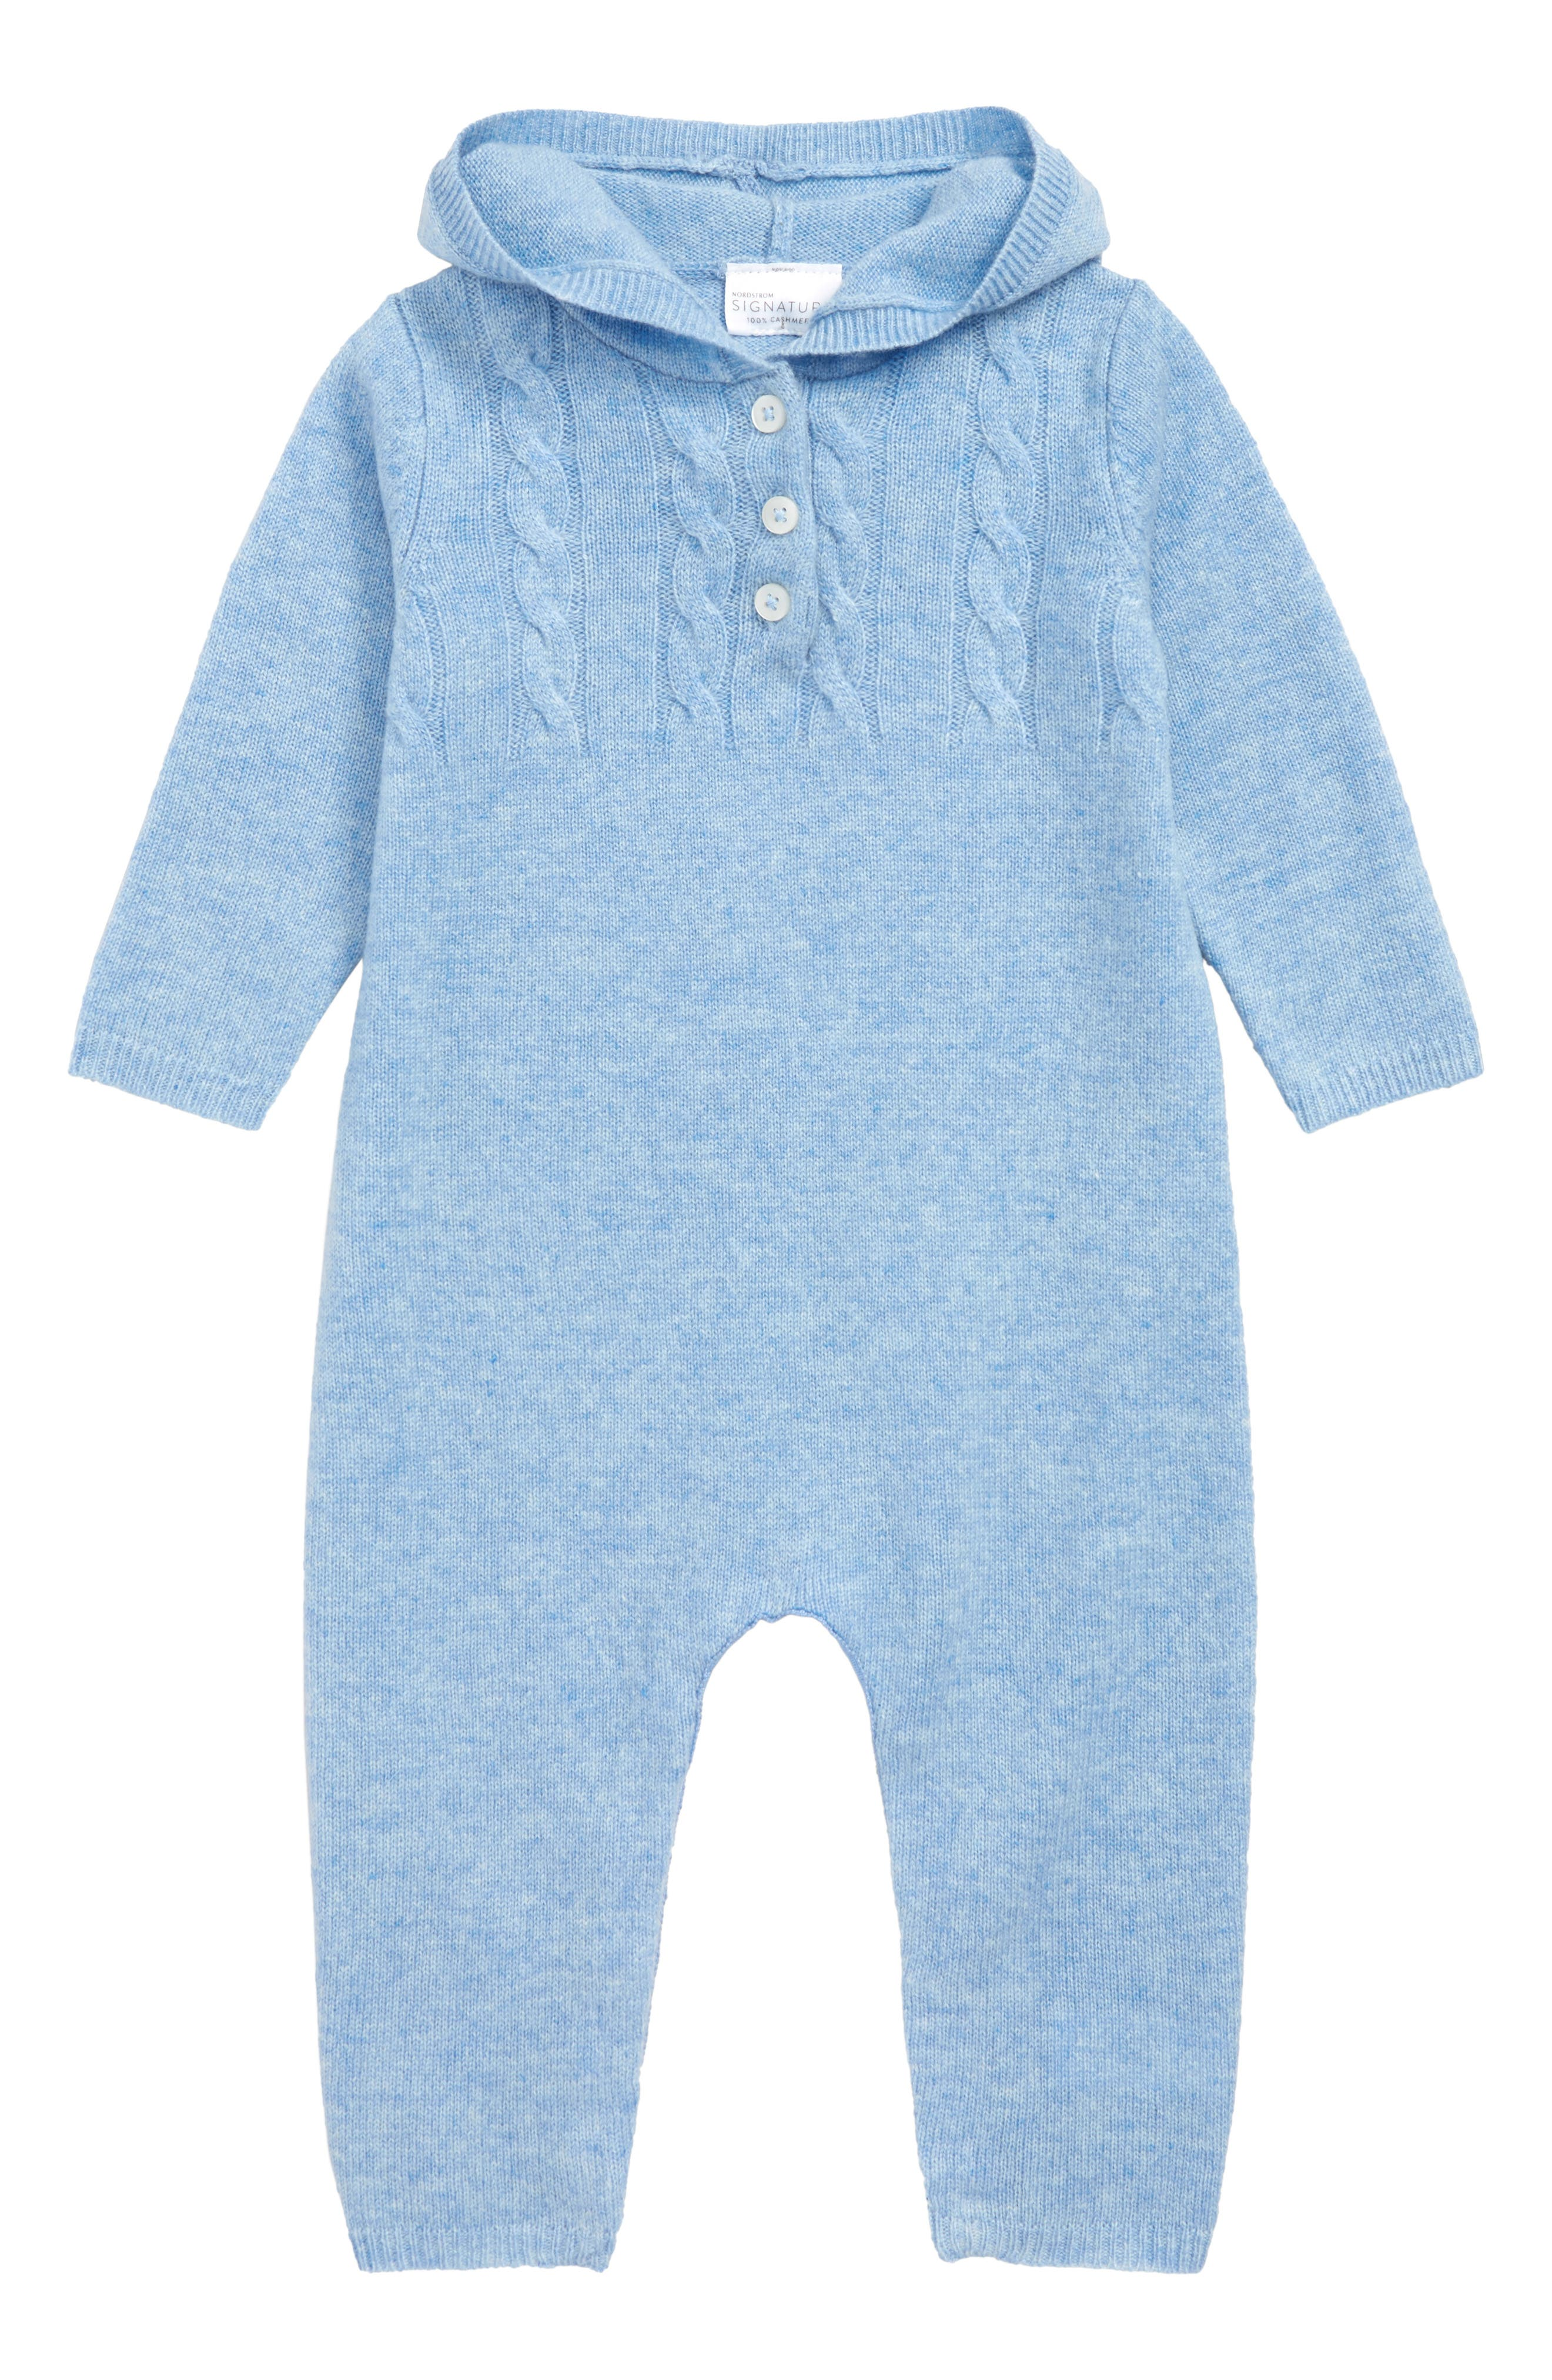 Cashmere Hooded Romper,                         Main,                         color, BLUE WHISPER HEATHER